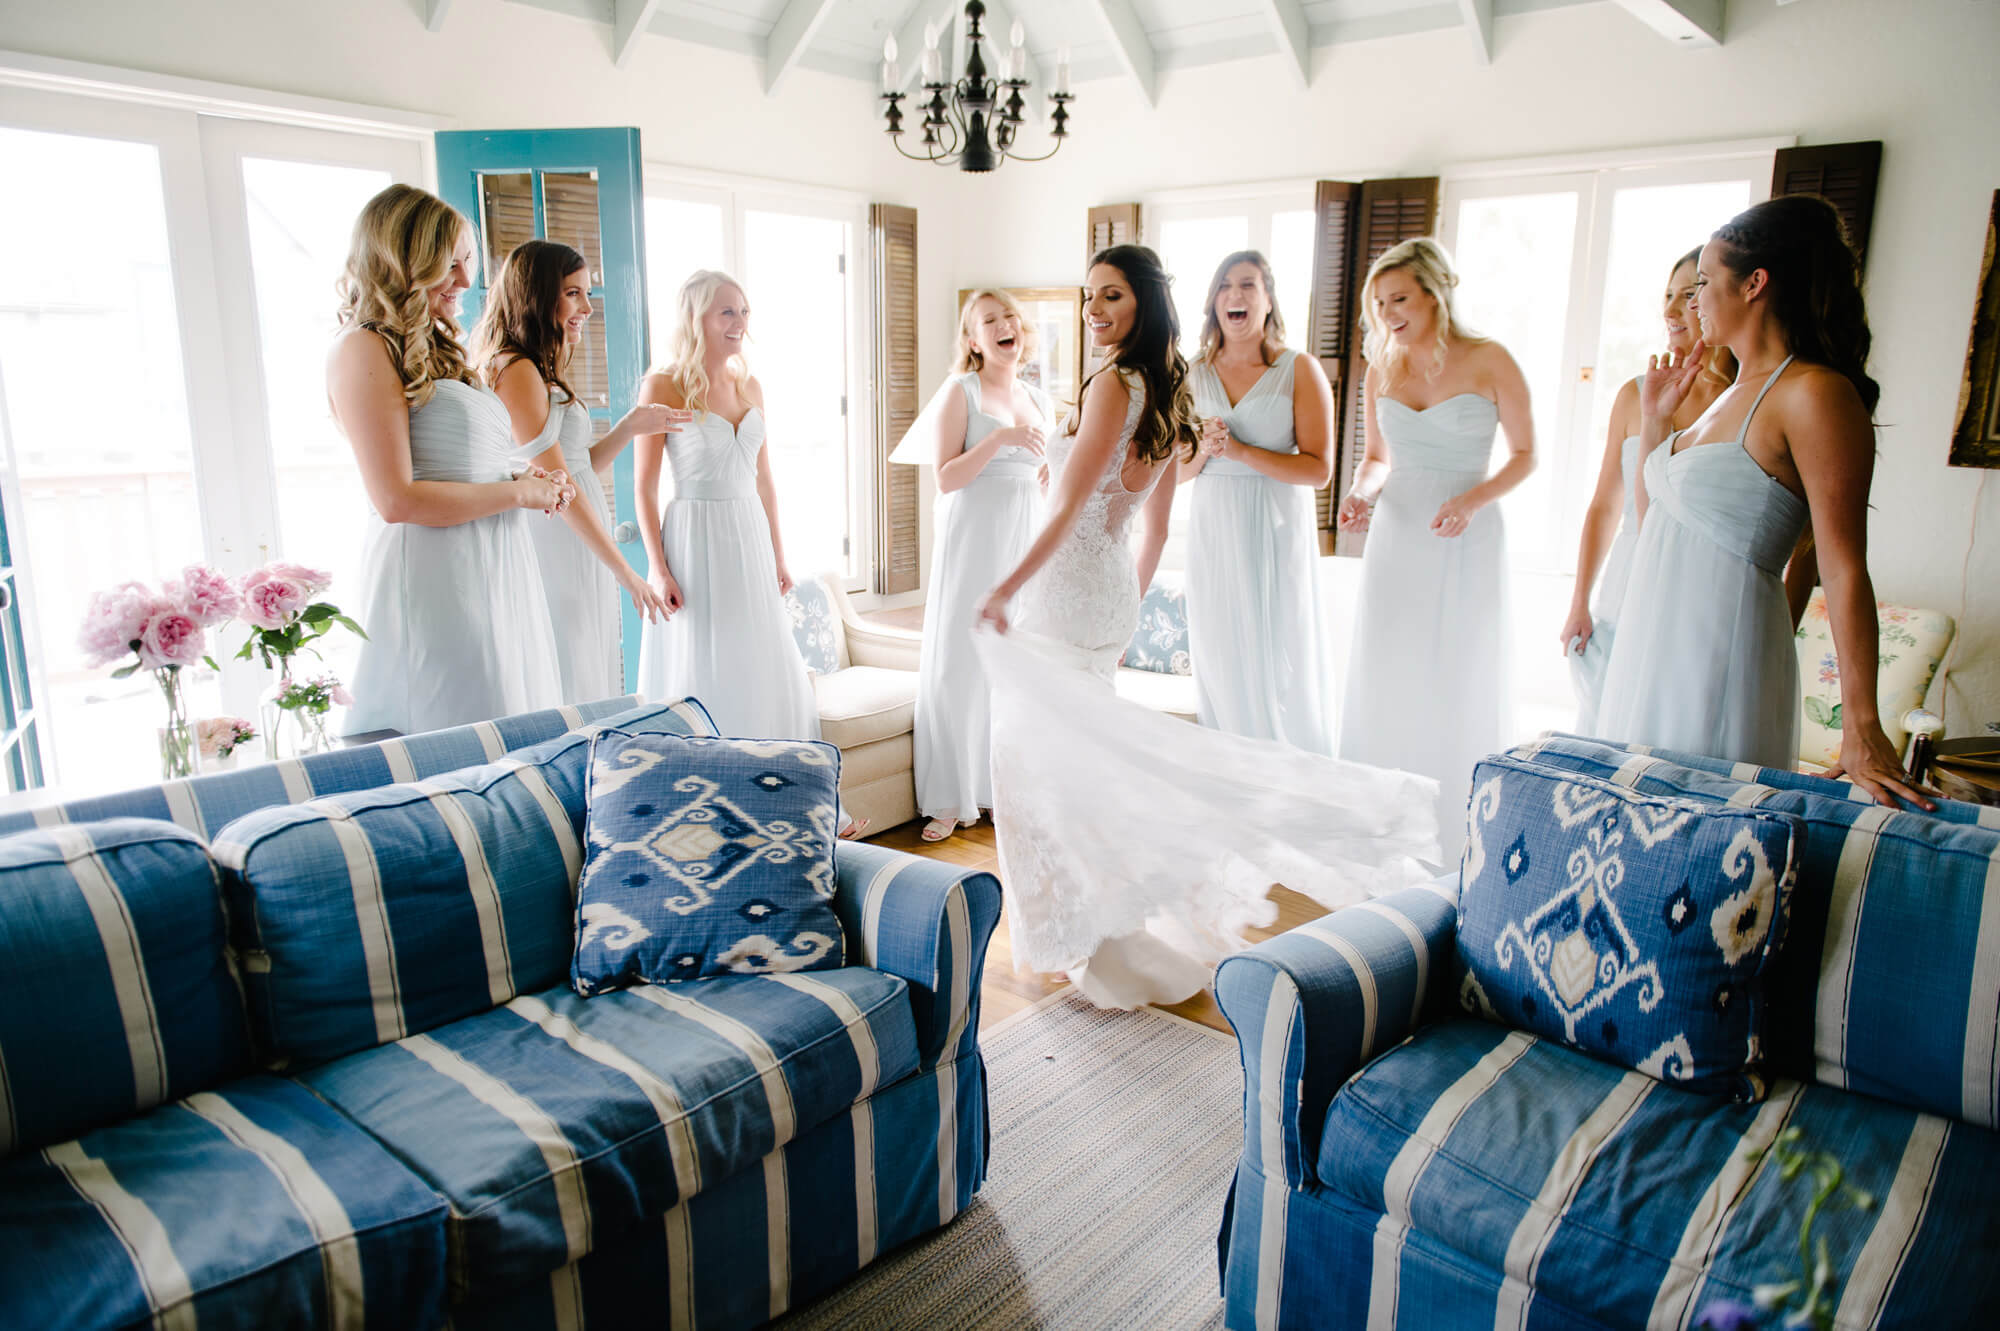 bride shows off gown in front of bridesmaids wearing light blue dresses before st malo beach wedding